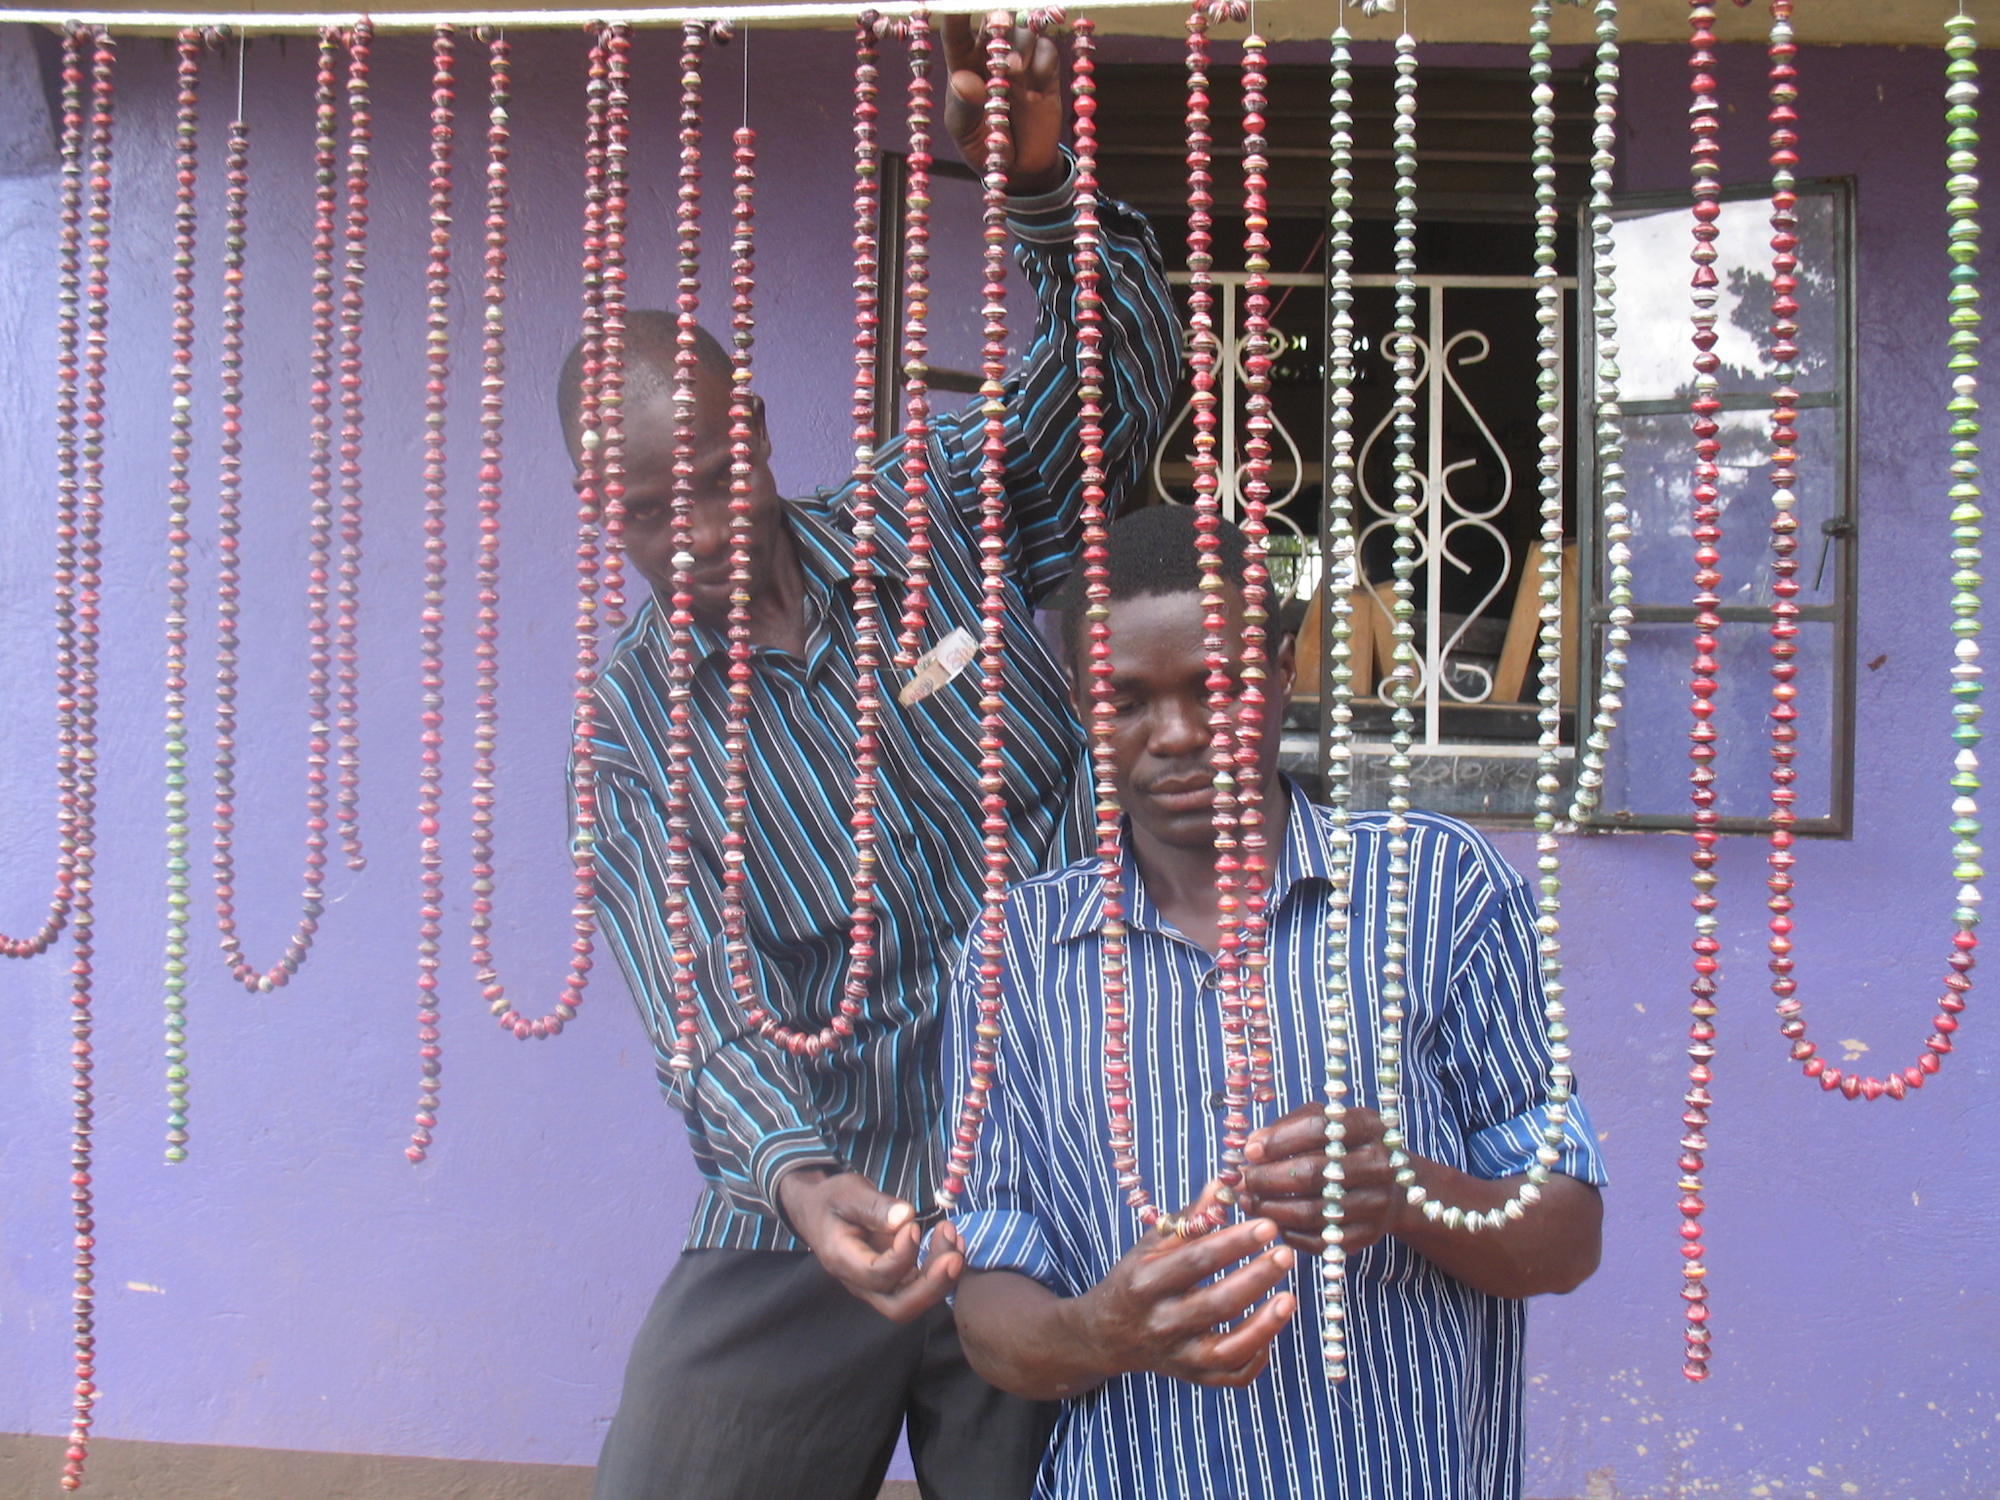 Men hanging strands of beads